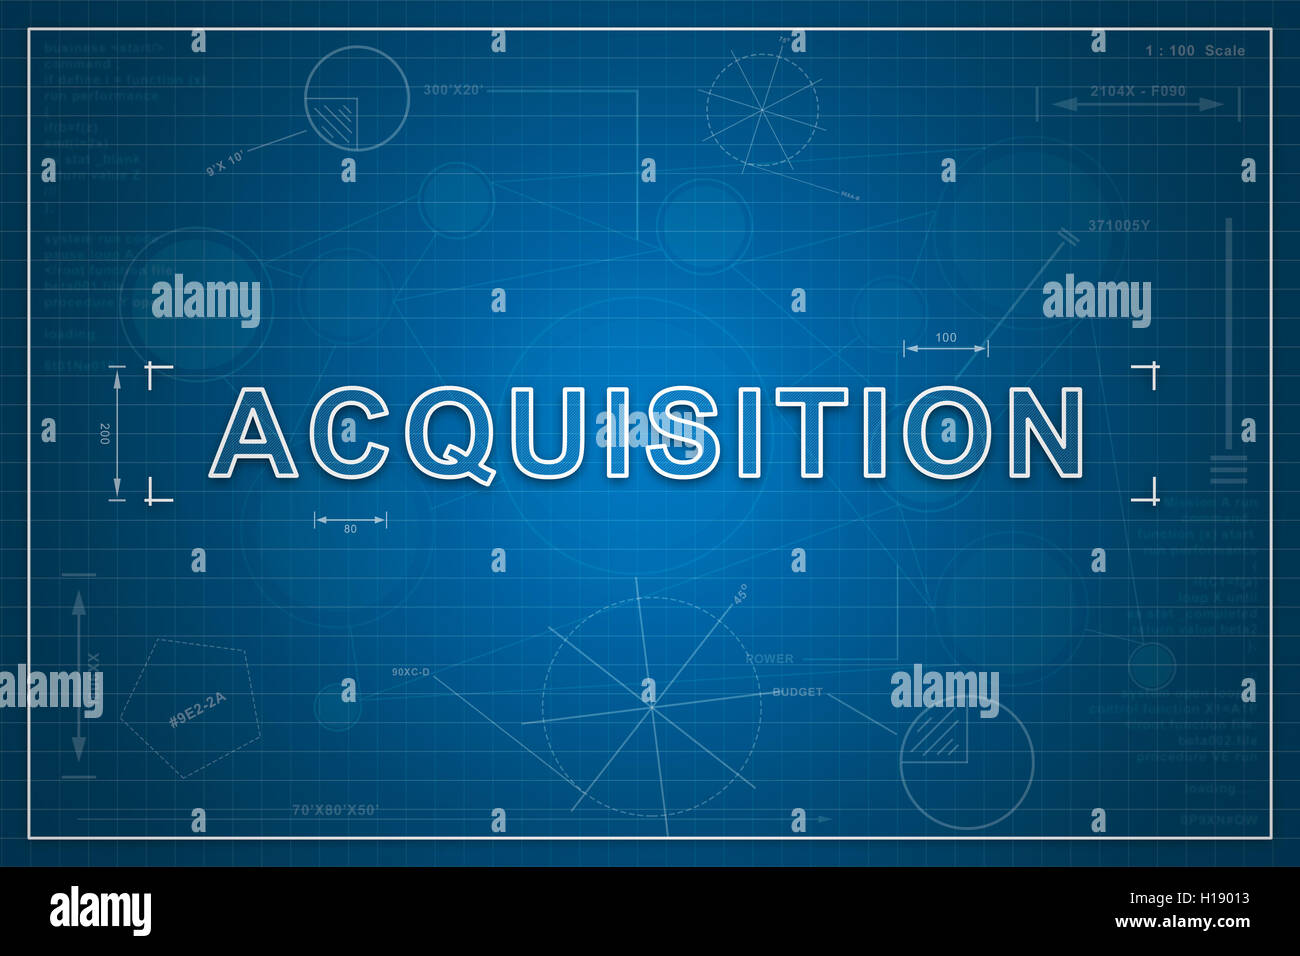 Acquisition on paper blueprint background, business concept - Stock Image